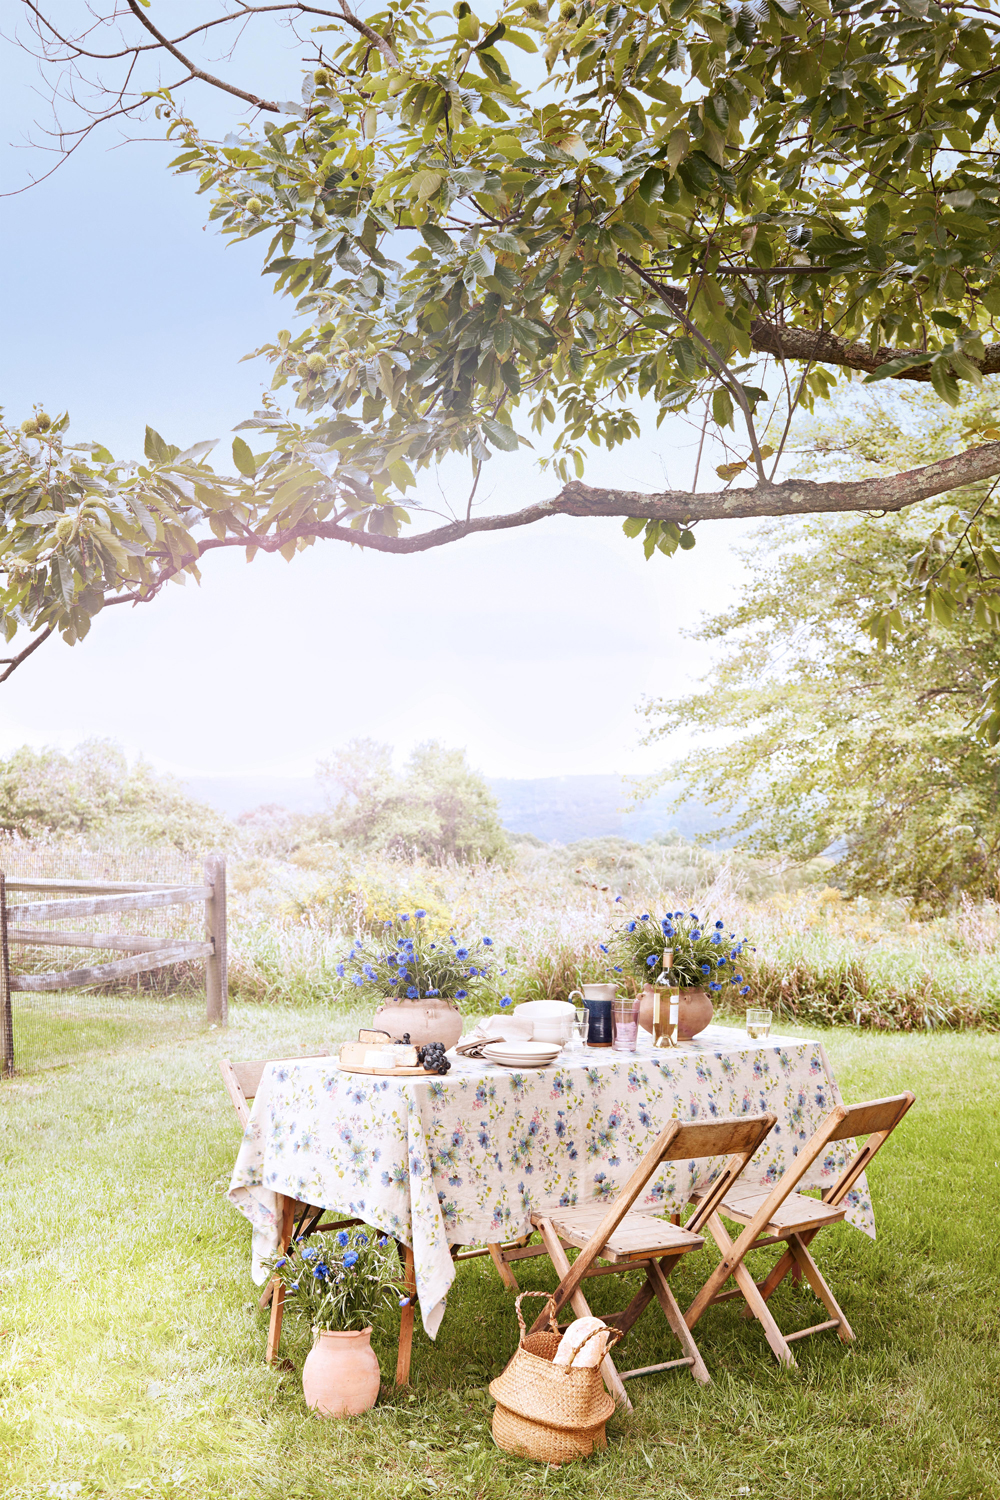 15 Stylish Outdoor Entertaining Essentials You'll Use All Summer Long